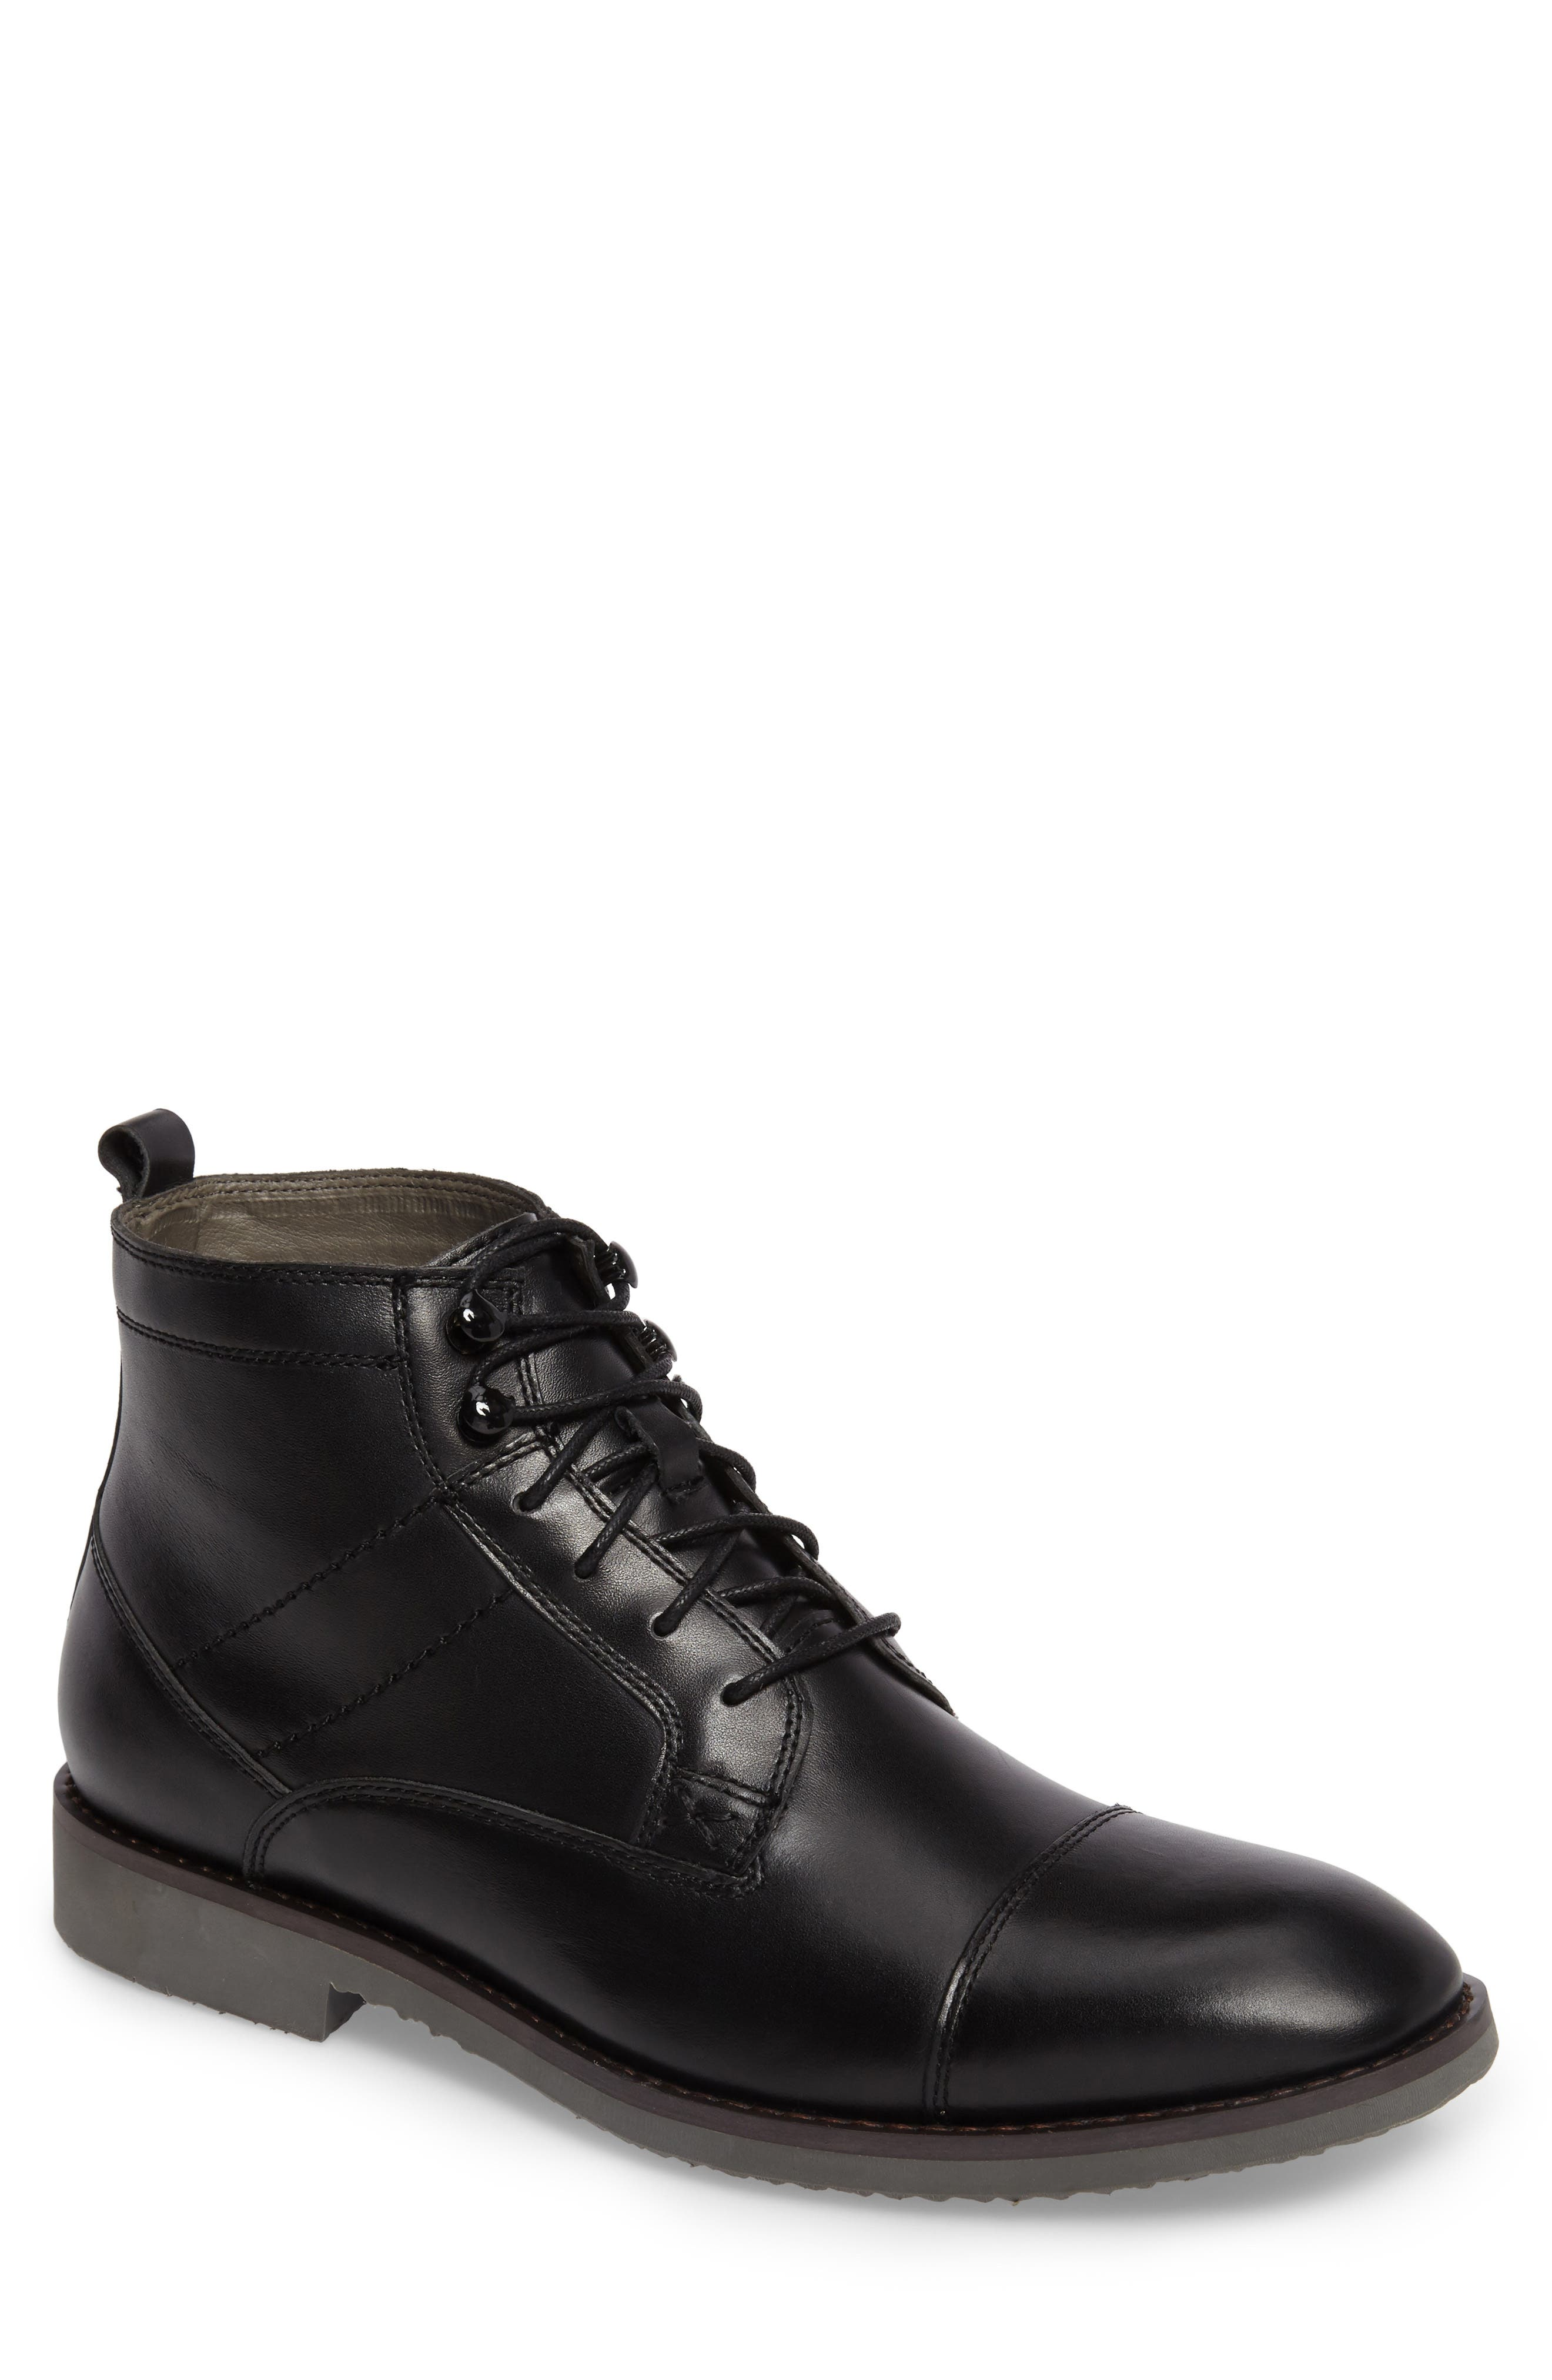 Alternate Image 1 Selected - English Laundry Ensor Cap Toe Boot (Men)